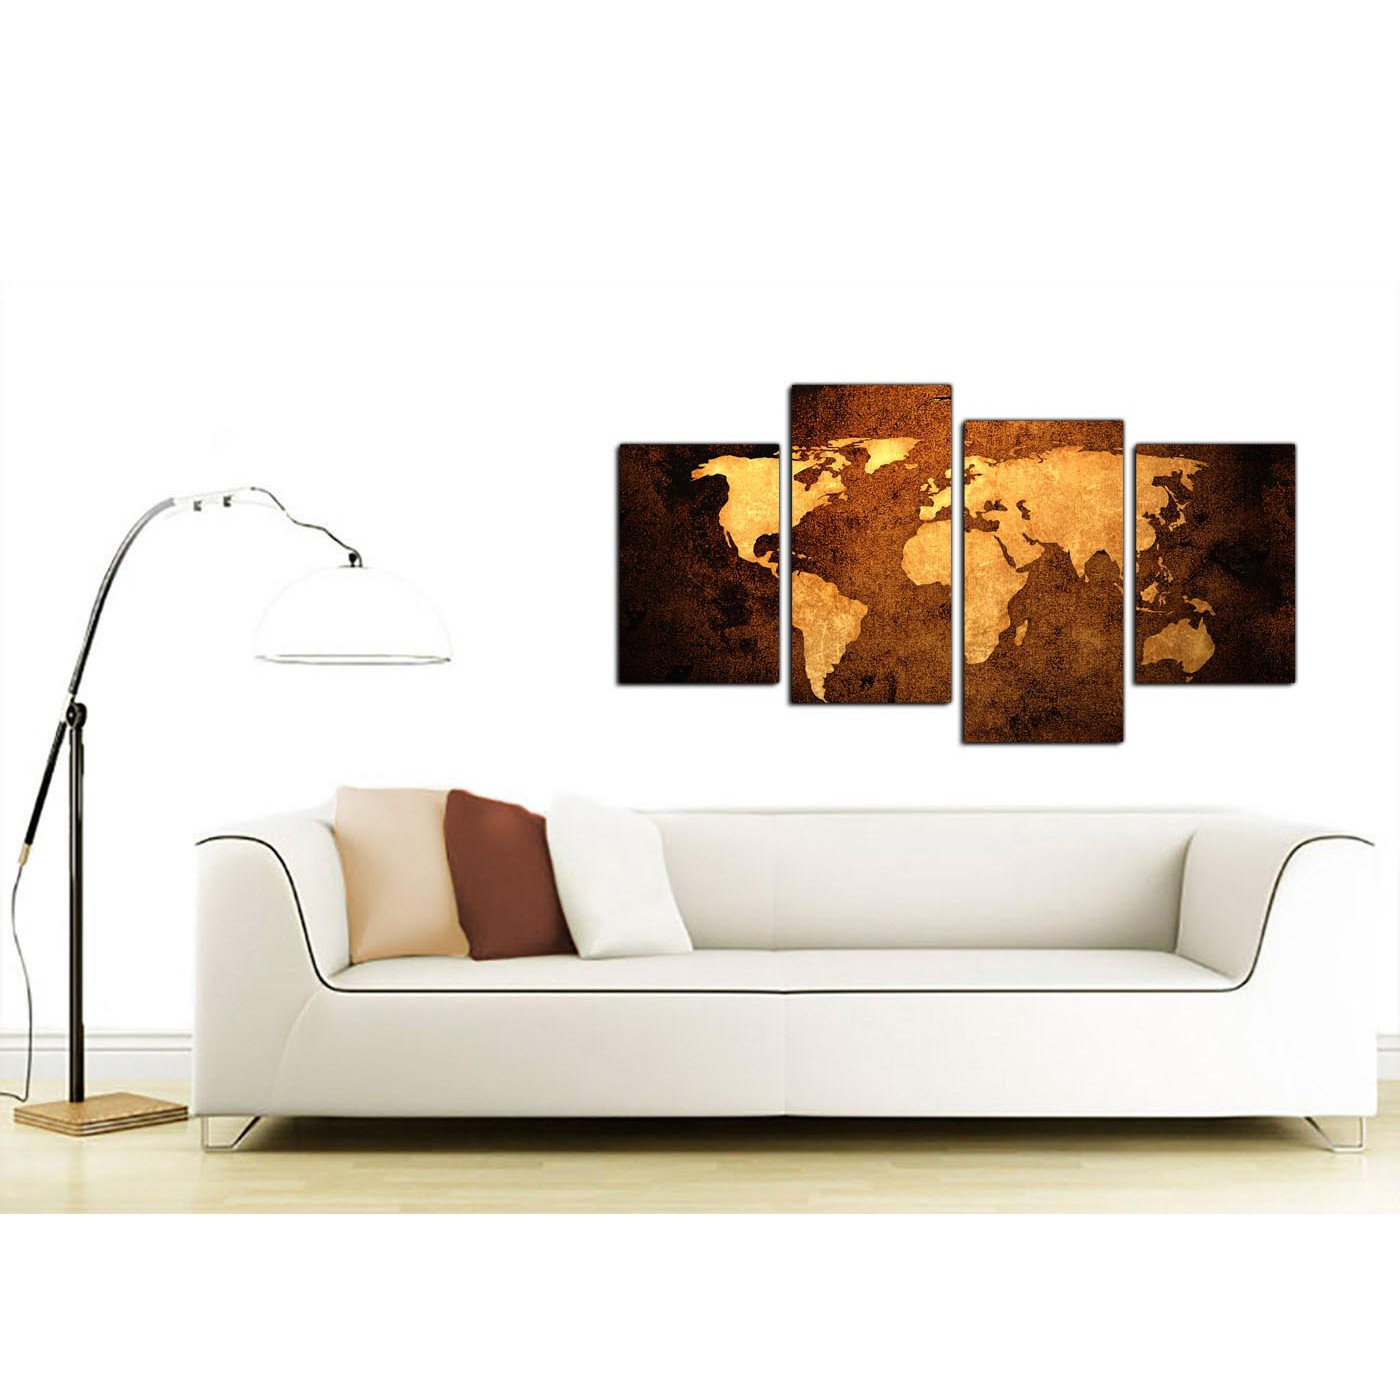 Canvas pictures of a world map in brown for your bedroom display gallery item 1 world map canvas wall art in tan for the home display gallery item 2 gumiabroncs Image collections